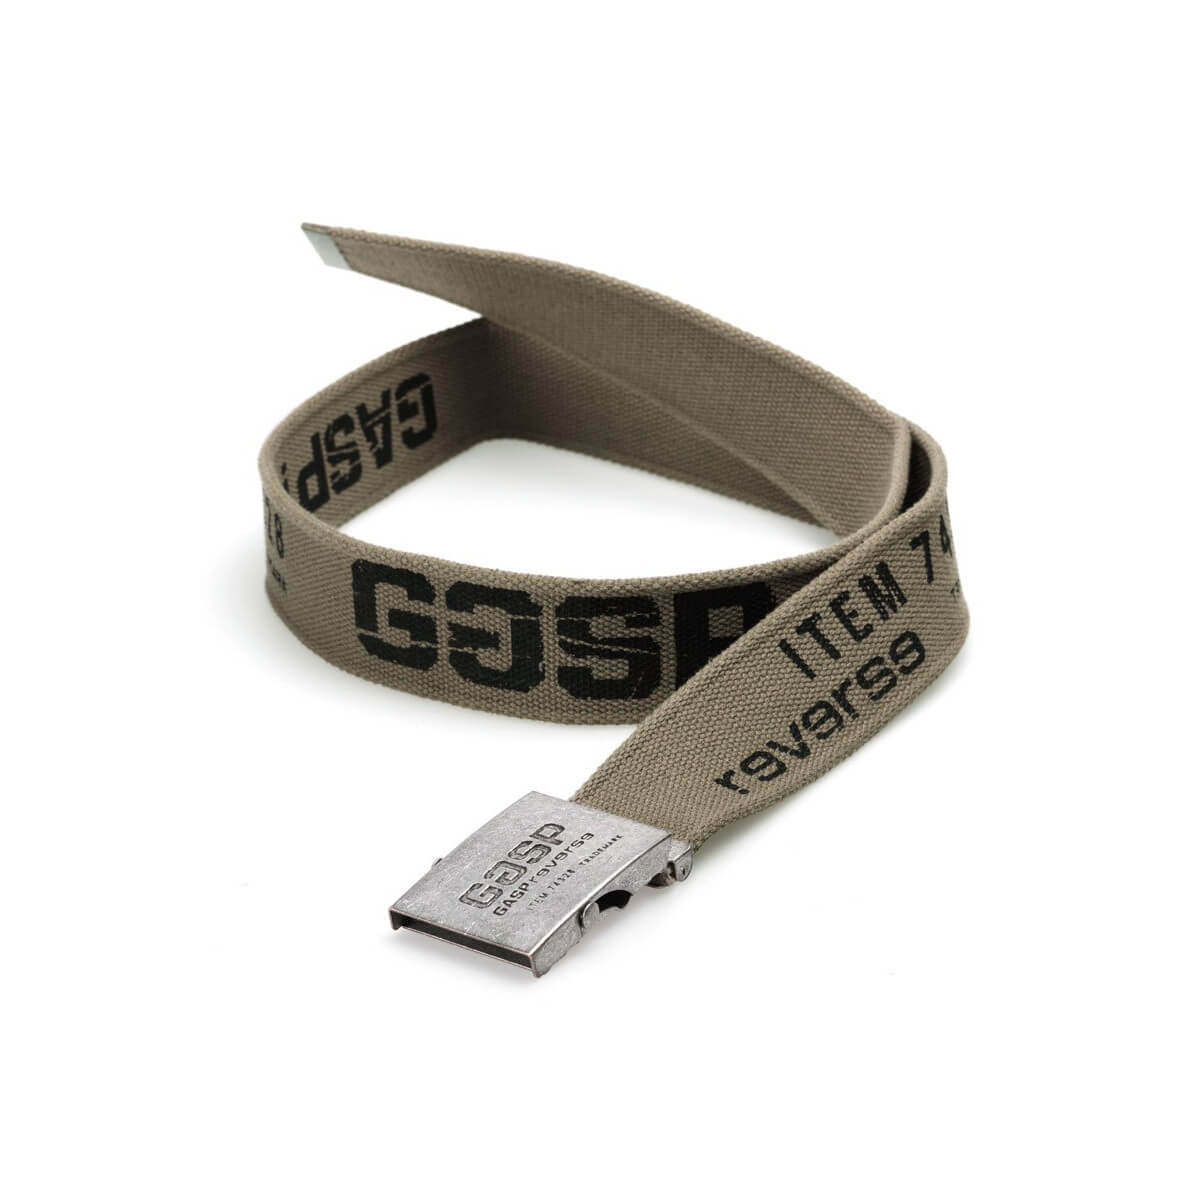 GASP VINTAGE BELT WASHED KHAKI